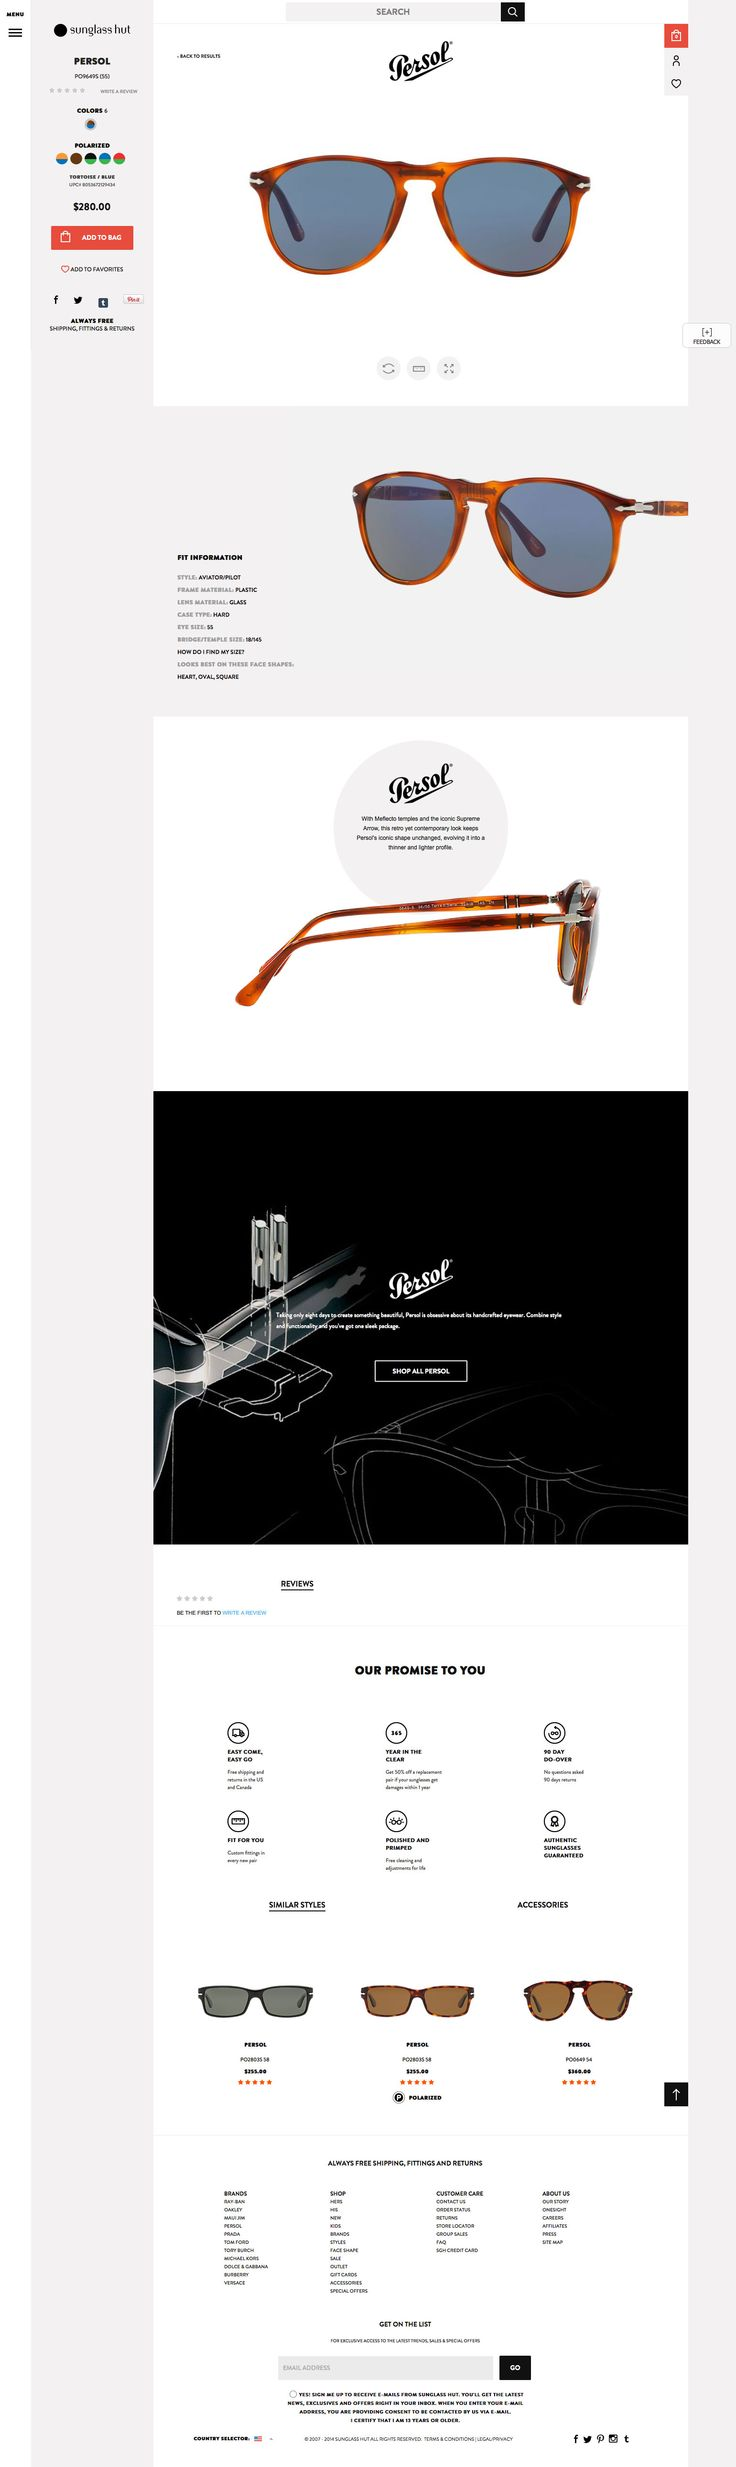 Sunglass Hut Desktop Product Page - http://www.cartrepublic.com/gallery/2014/11/sunglass-hut-desktop-product-page/